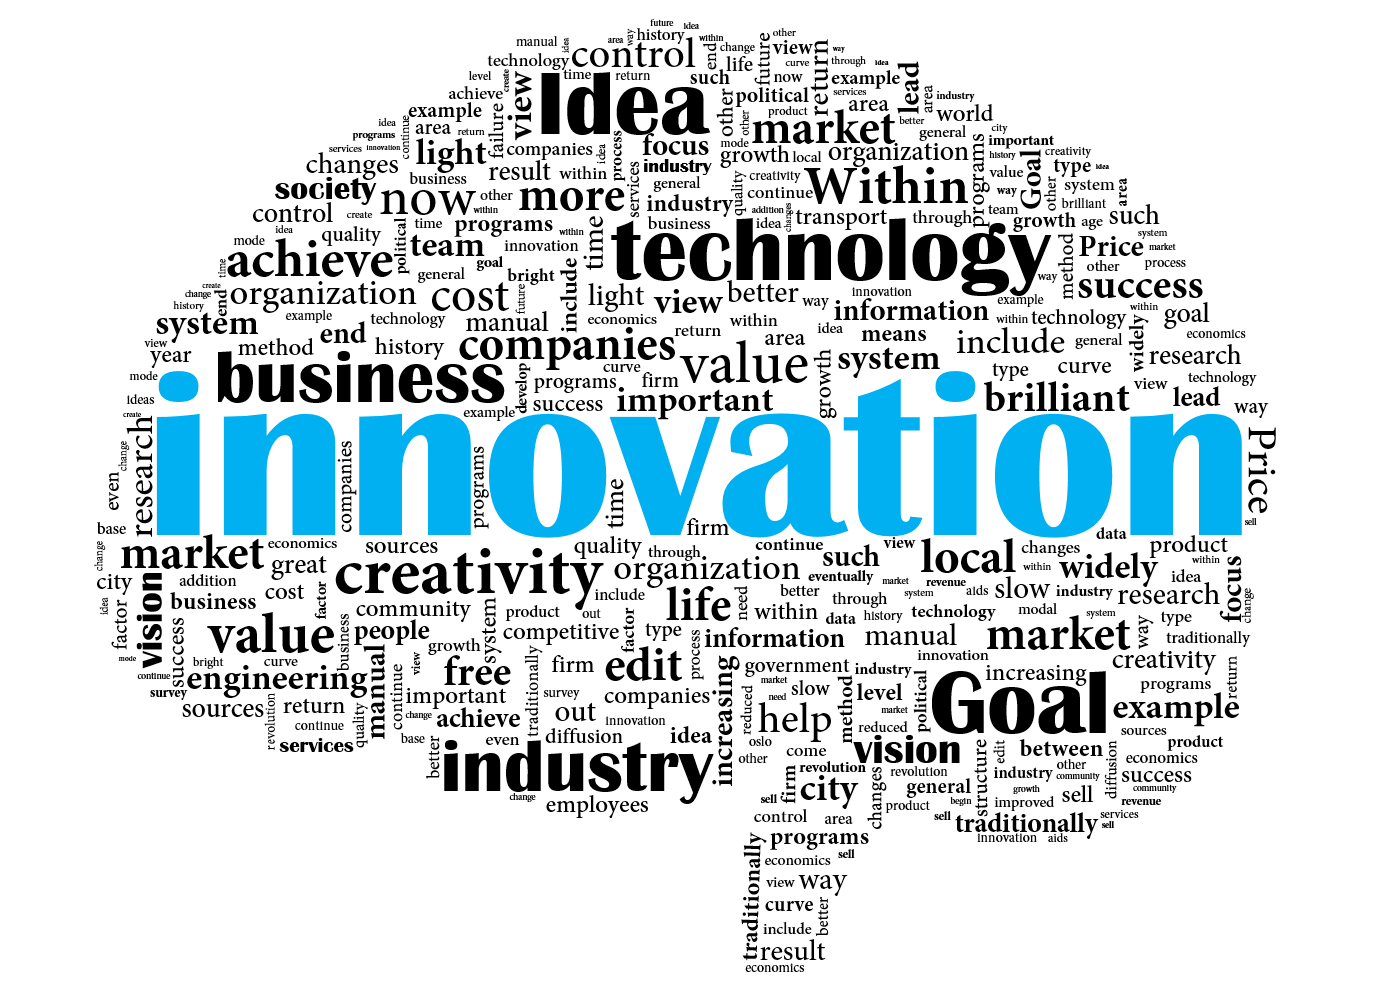 Free Innovation PNG Transparent Images, Download Free Clip.